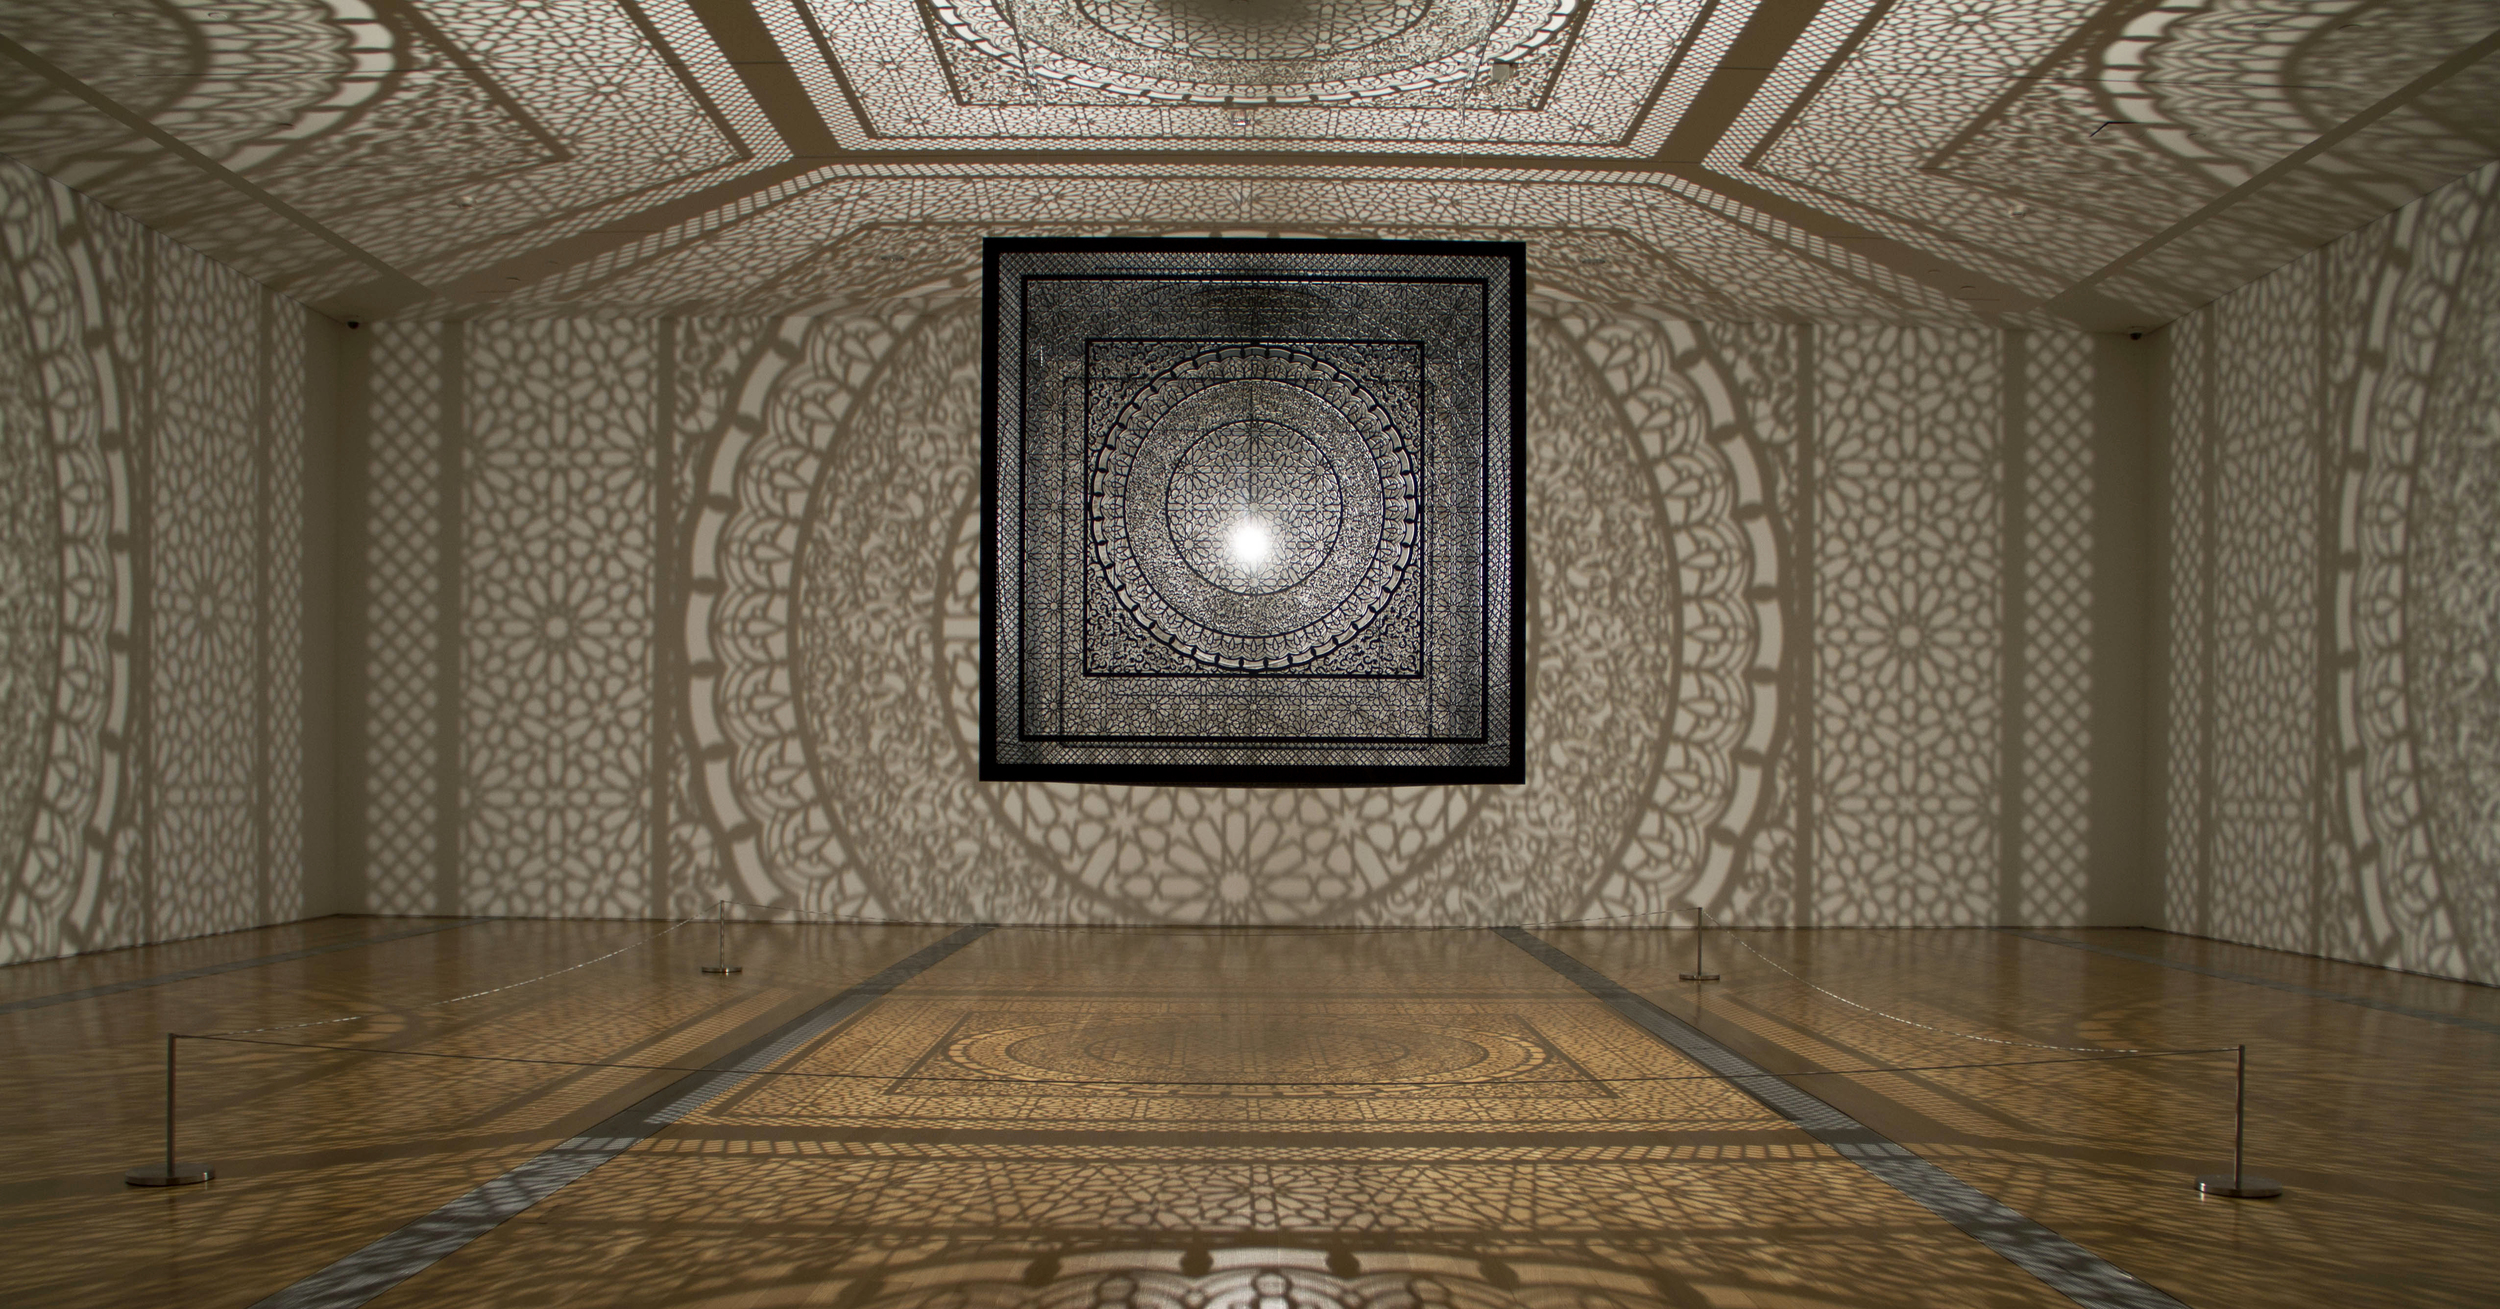 Laser-cut stainless steel and blub | Anila Quayyum Agha